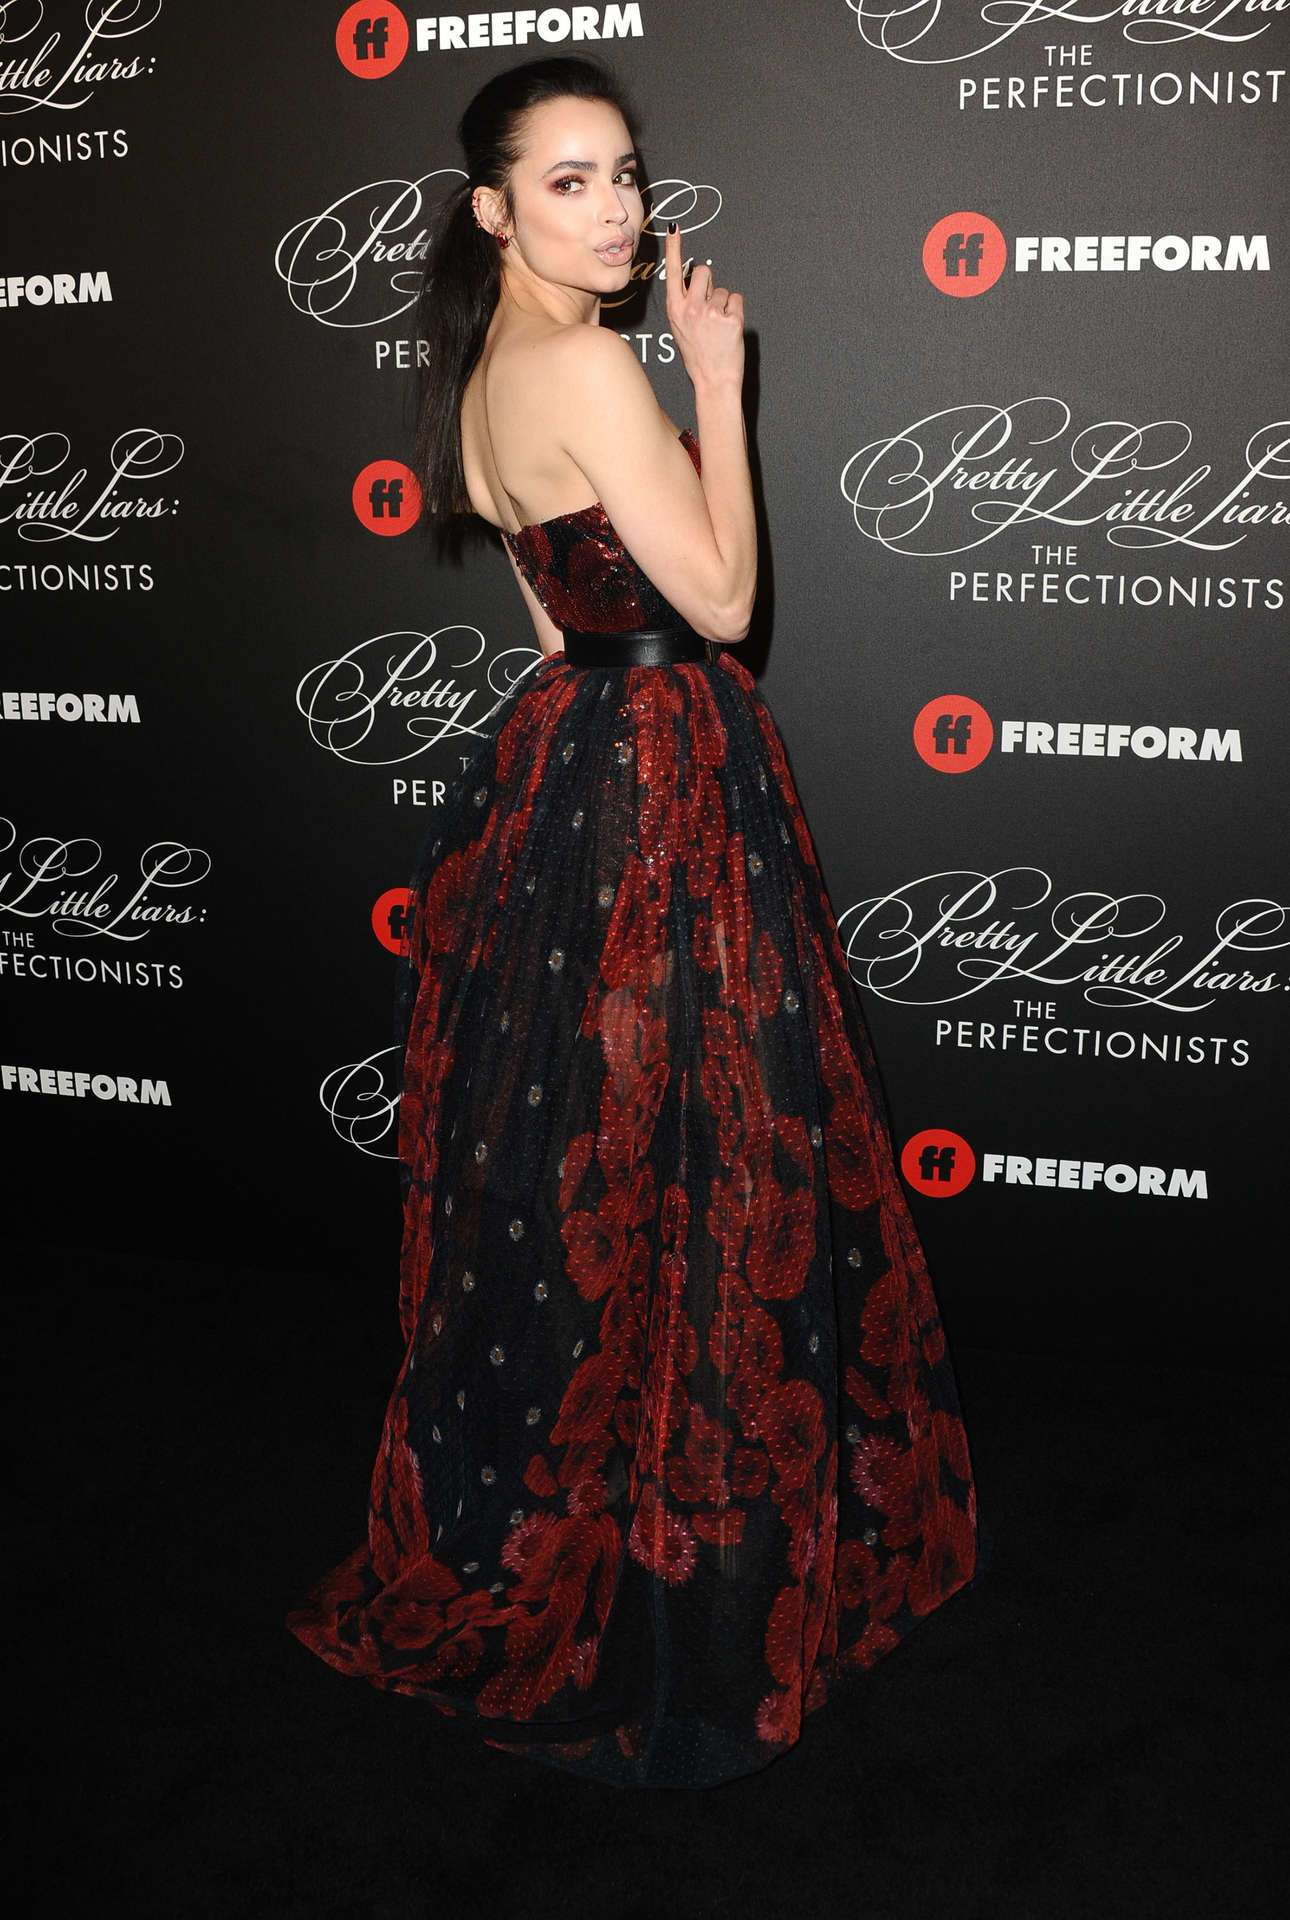 Sofia Carson at the Premiere of 'Pretty Little Liars: The Perfectionists' in Hollywood